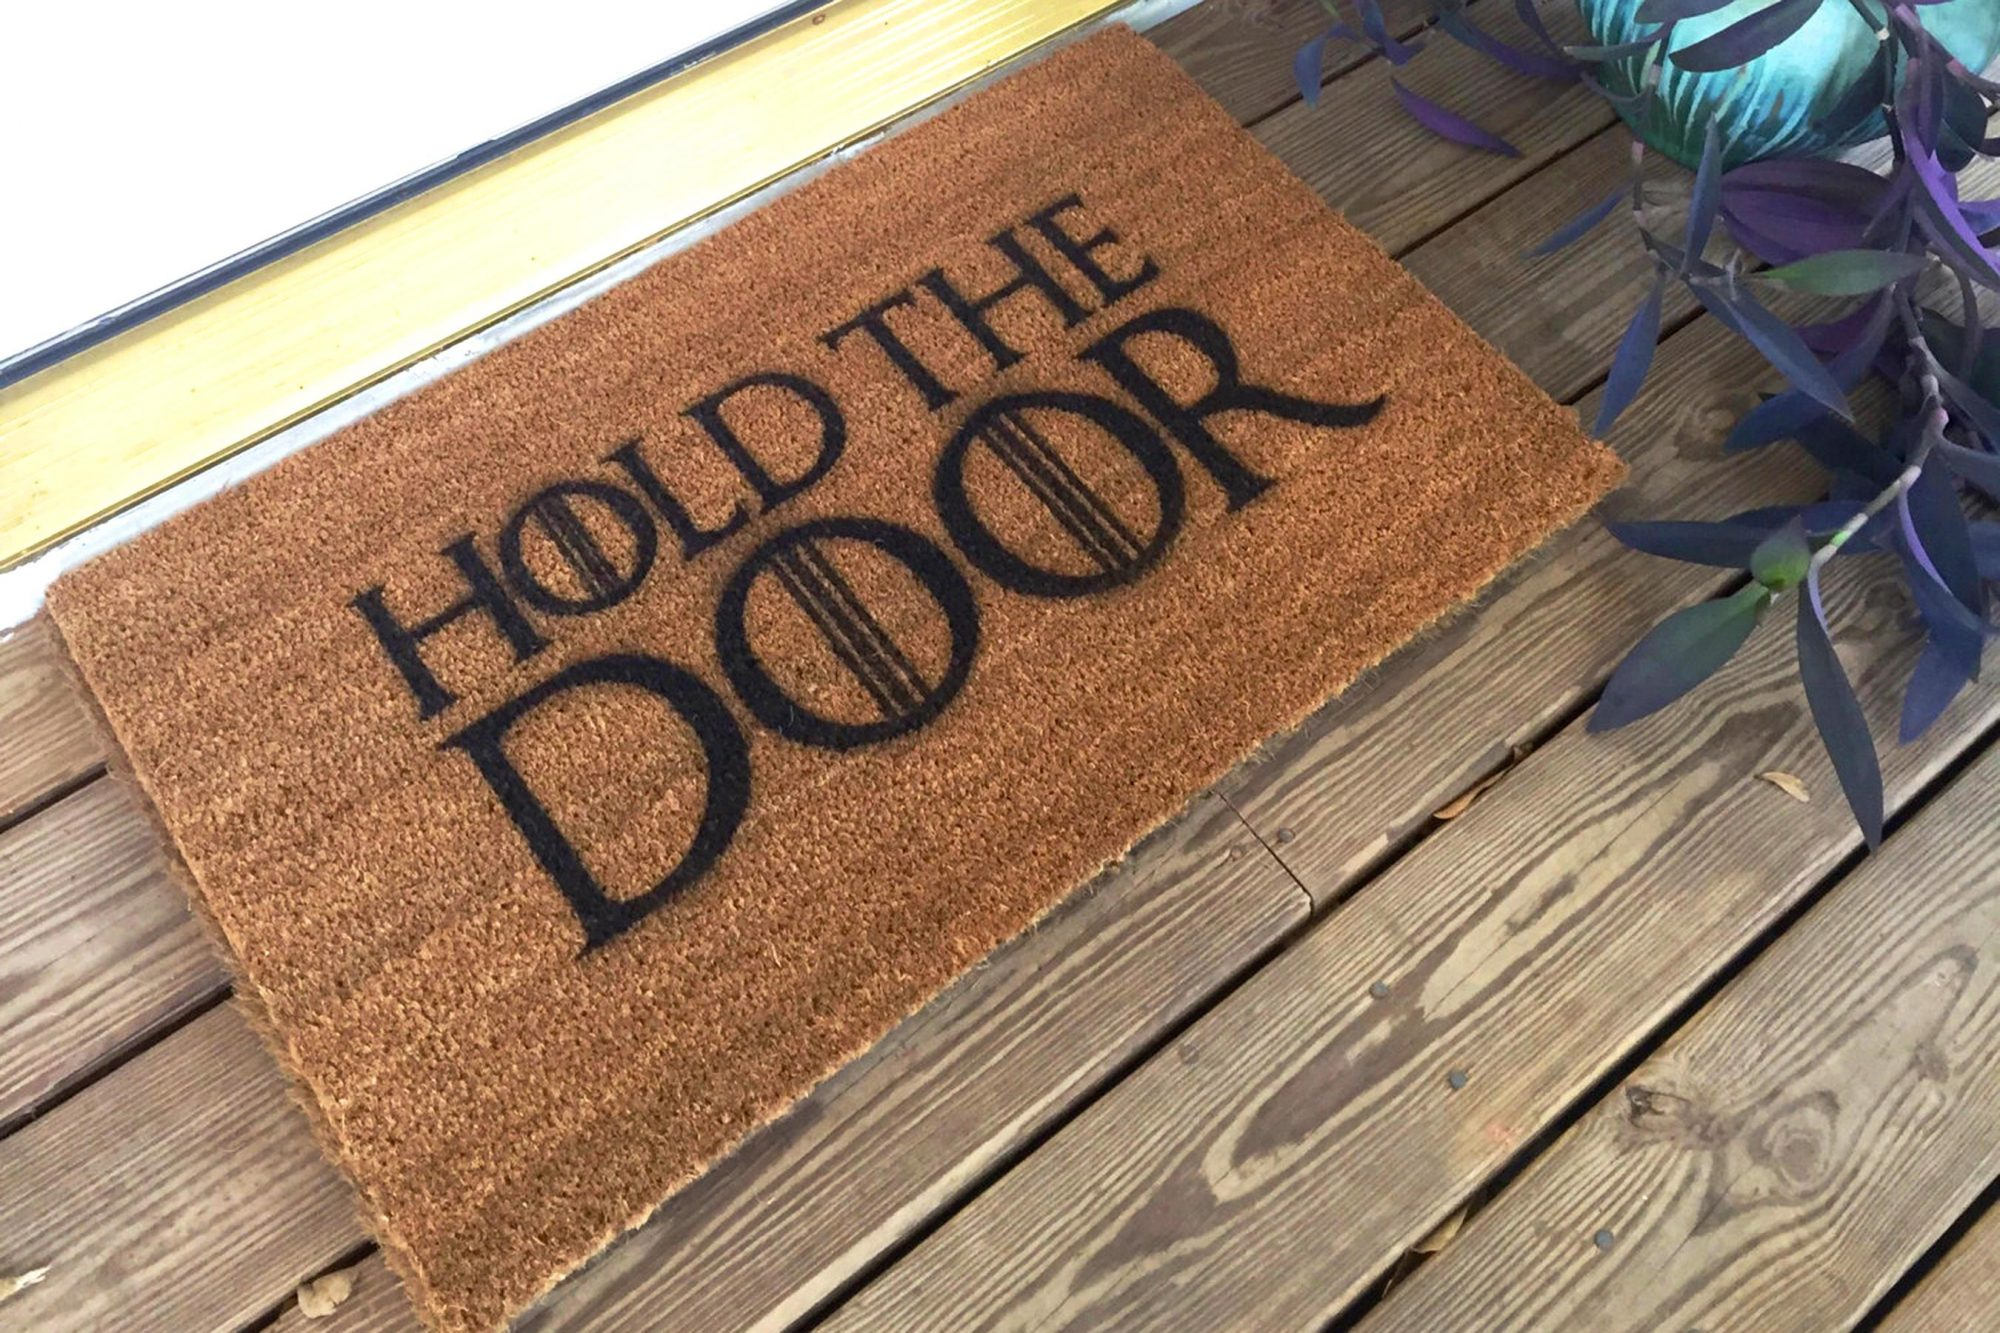 Game of Thrones - Hold The Door mat$36.99SouthBySouthHome